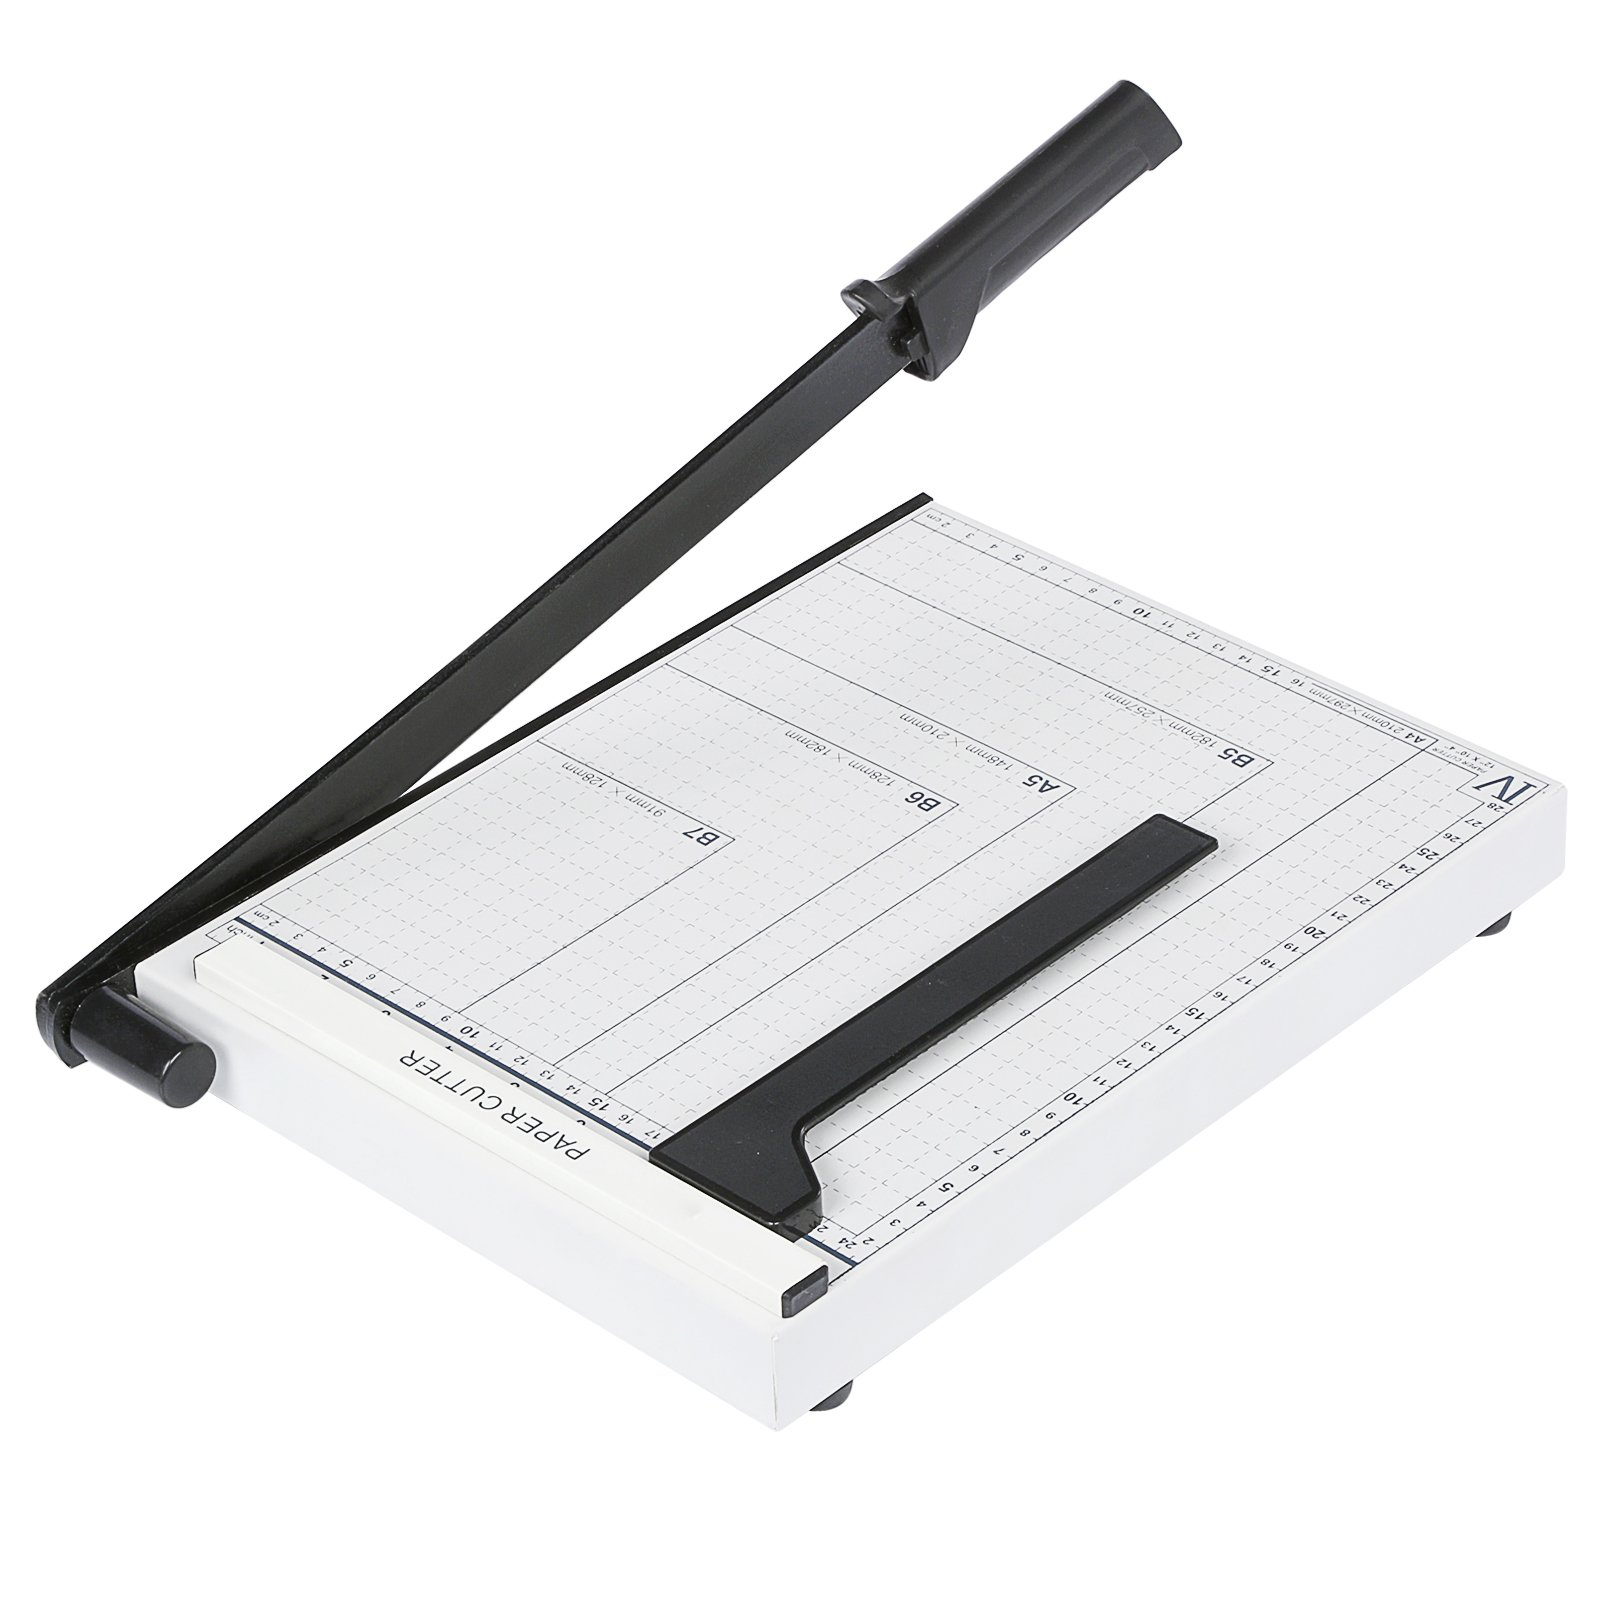 Heavy duty A4, B5, A5, B6, B7 Paper Cutter Trimmer Craft Guillotine Professional Photo Paper Cutting Machine for Home Office